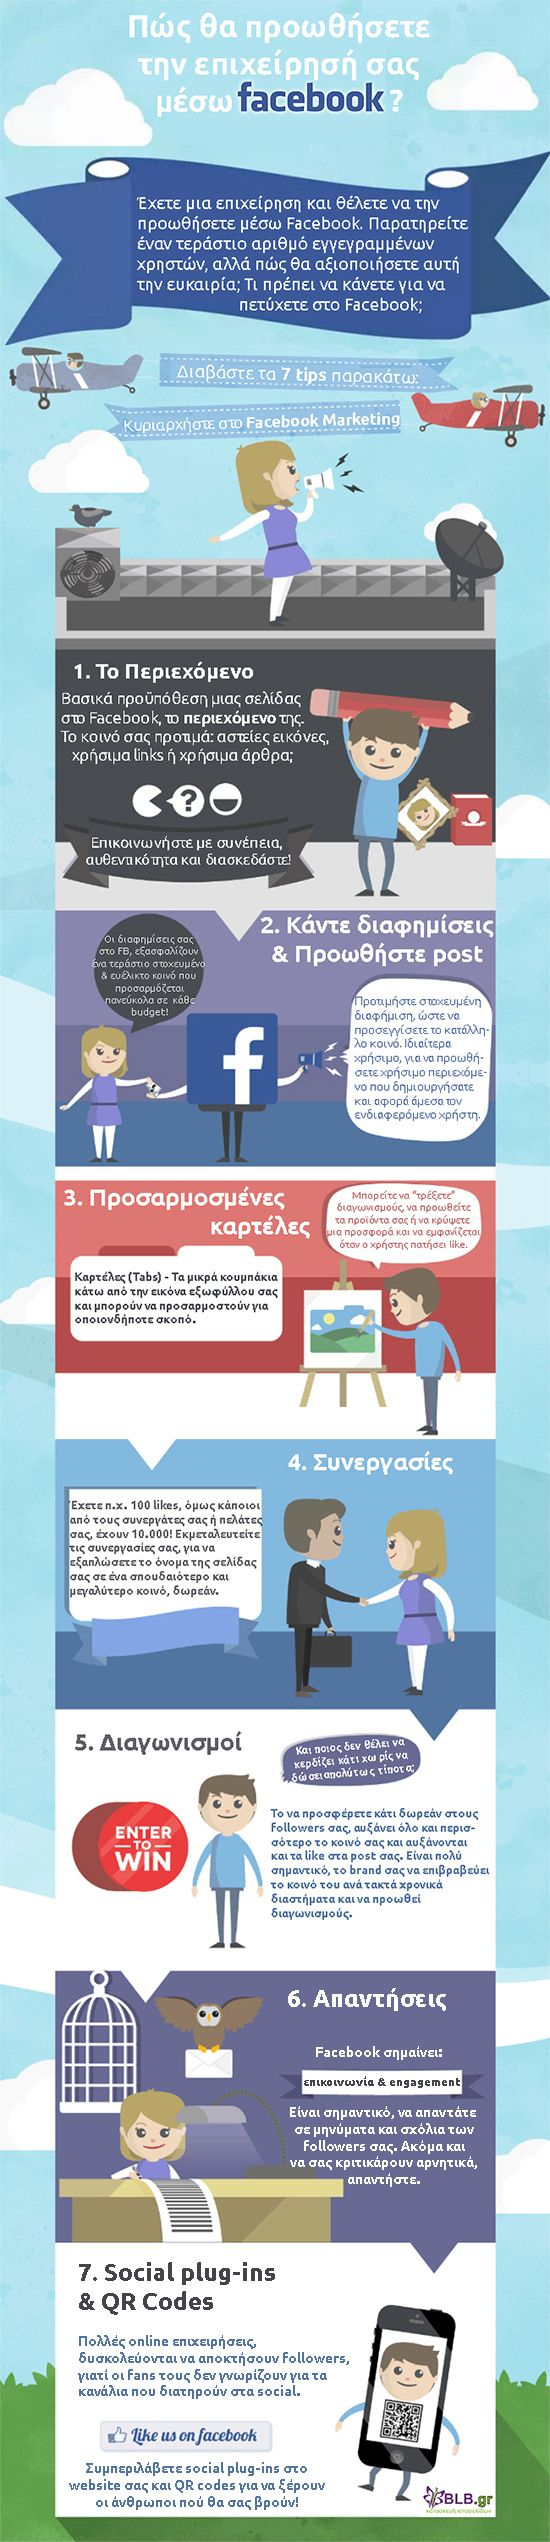 How to #market a #business on #Facebook  #infographic #marketing #socialmedia